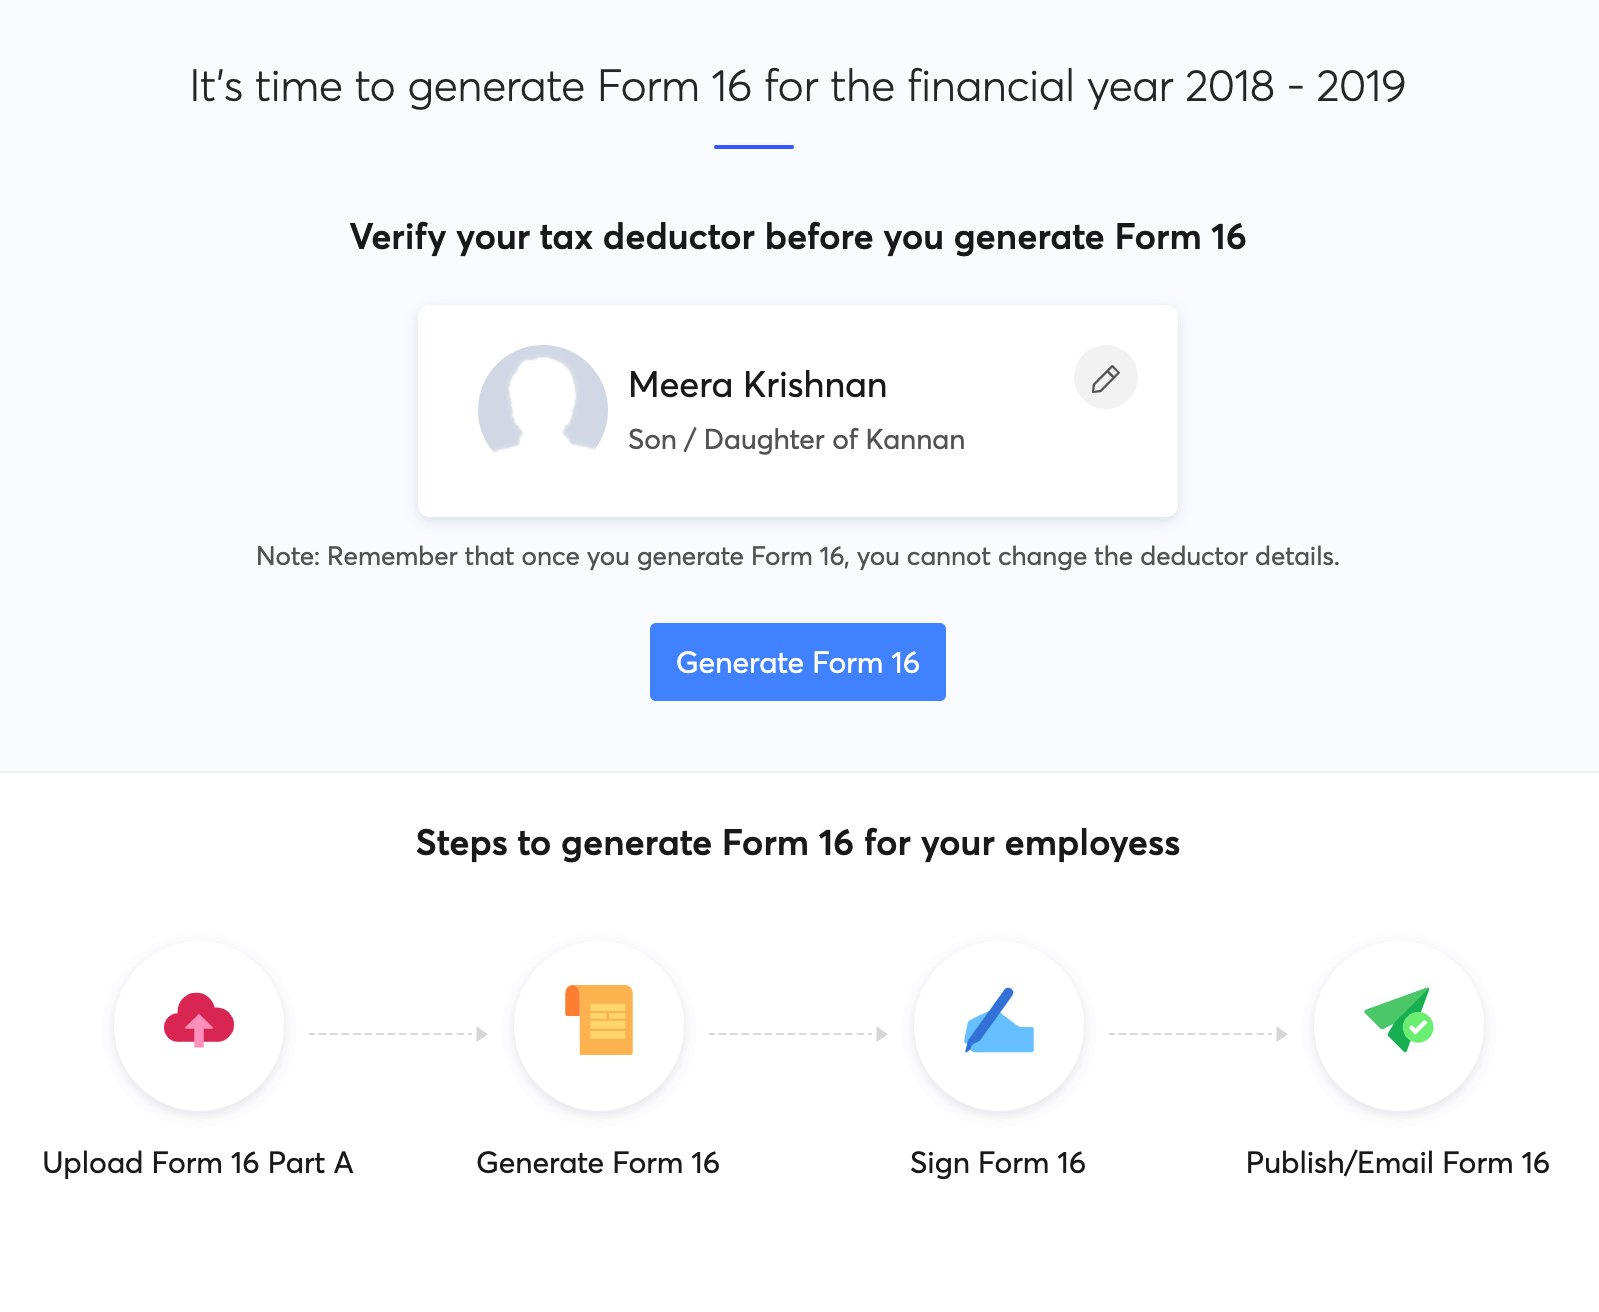 Generate Form 16